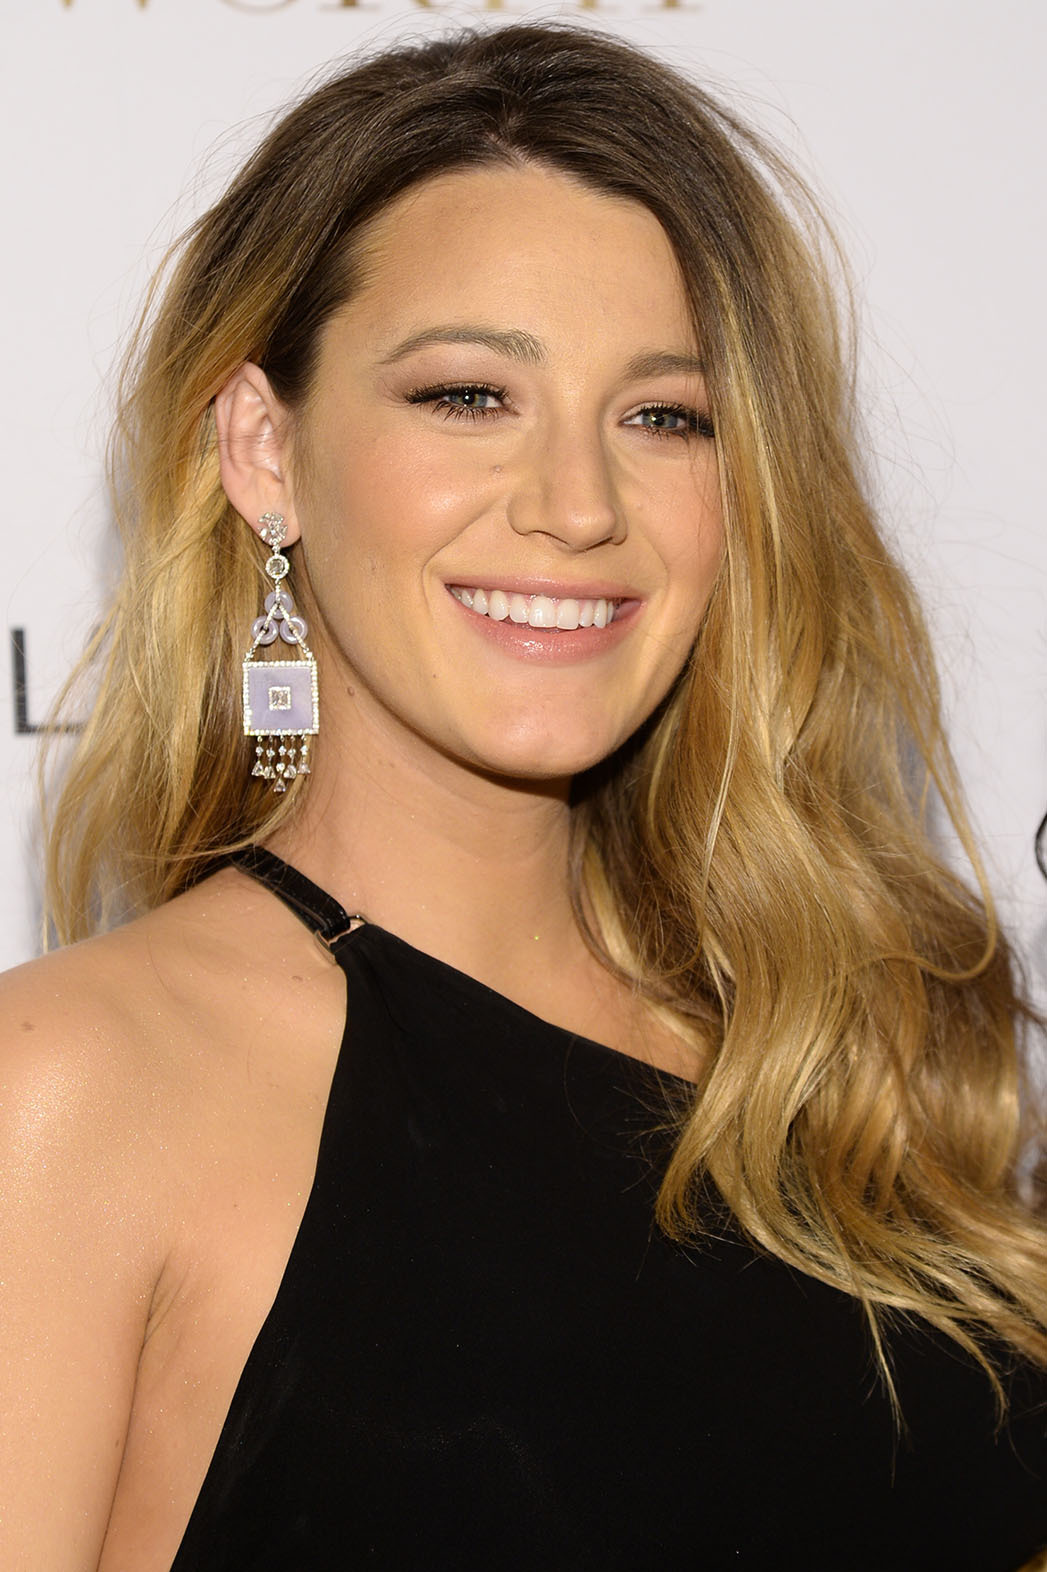 Blake Lively High Quality Wallpapers For Iphone